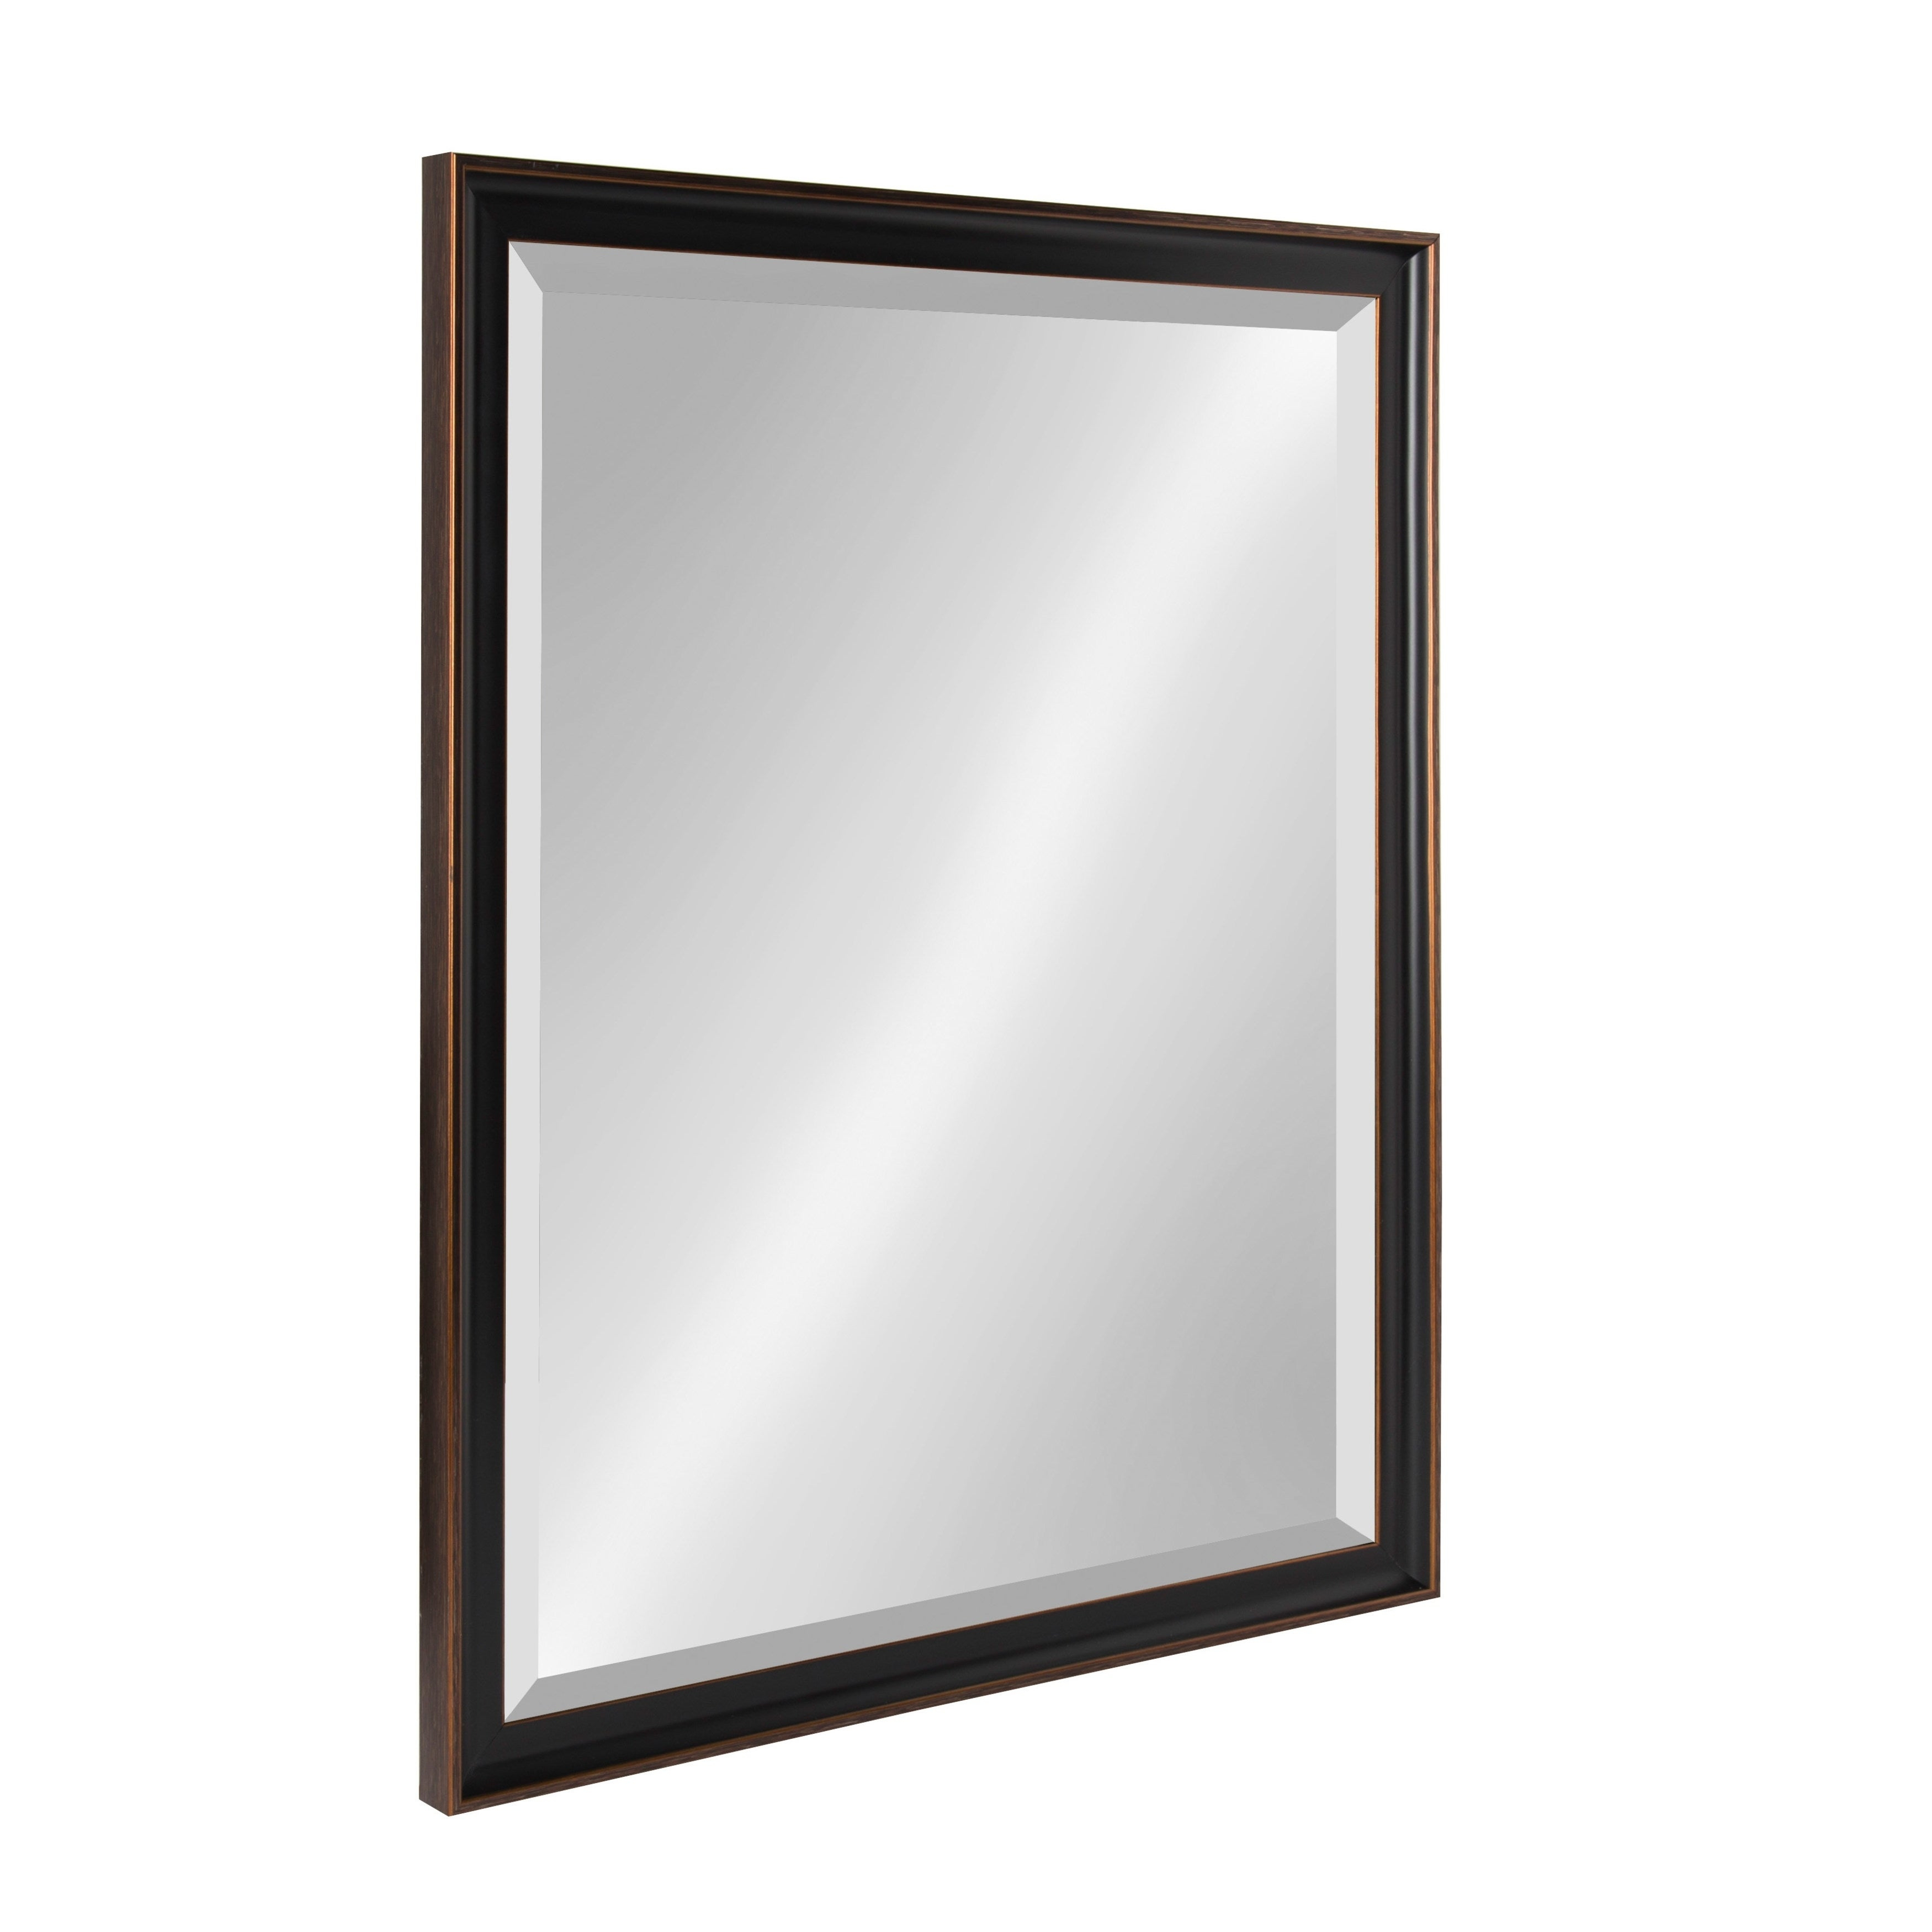 Kate And Laurel Havana Framed Beveled Wall Mirror – Antique Bronze With Rectangle Plastic Beveled Wall Mirrors (View 13 of 20)